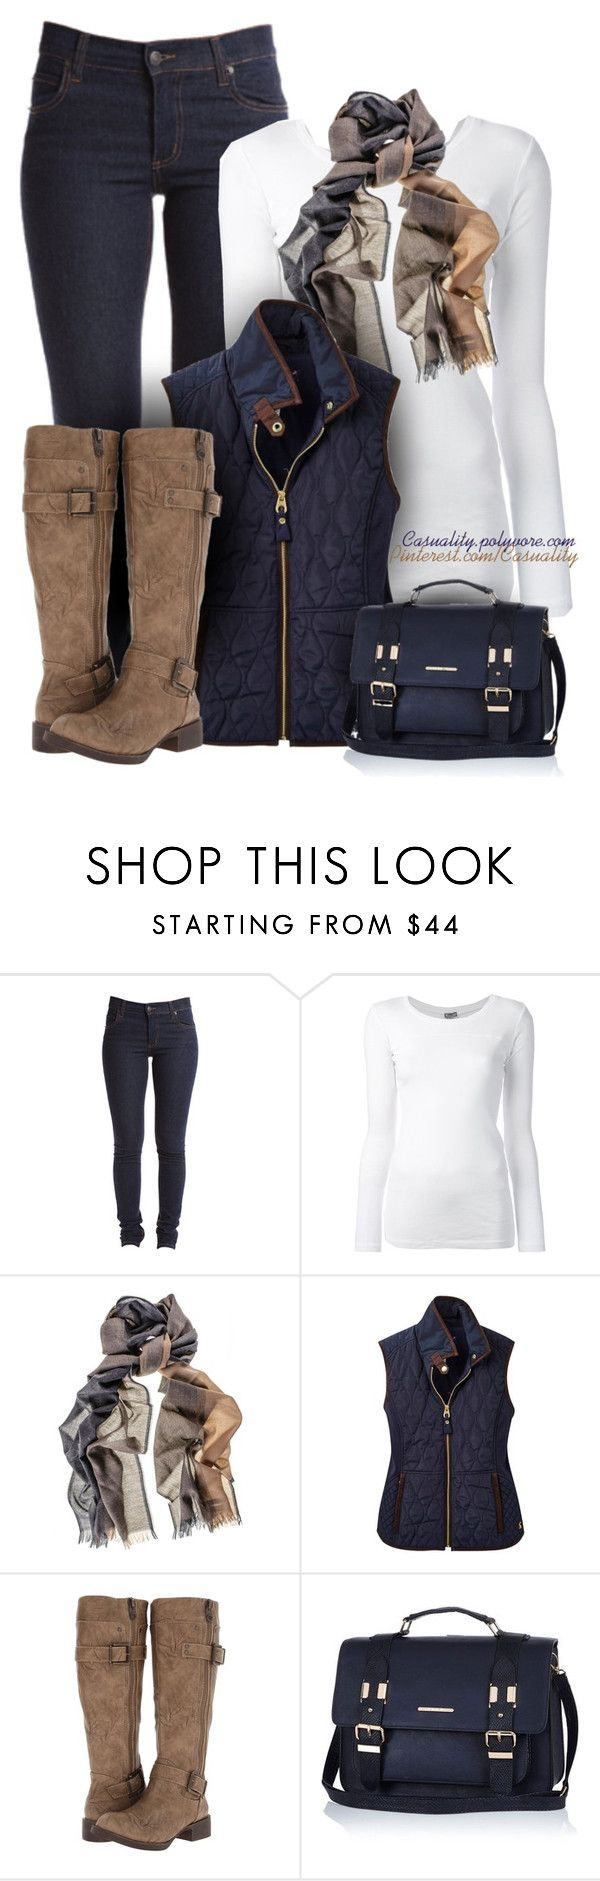 """""""Untitled #1545"""" by casuality ❤ liked on Polyvore featuring Cheap Monday, KristenseN du Nord, Joules, Blowfish and River Island"""